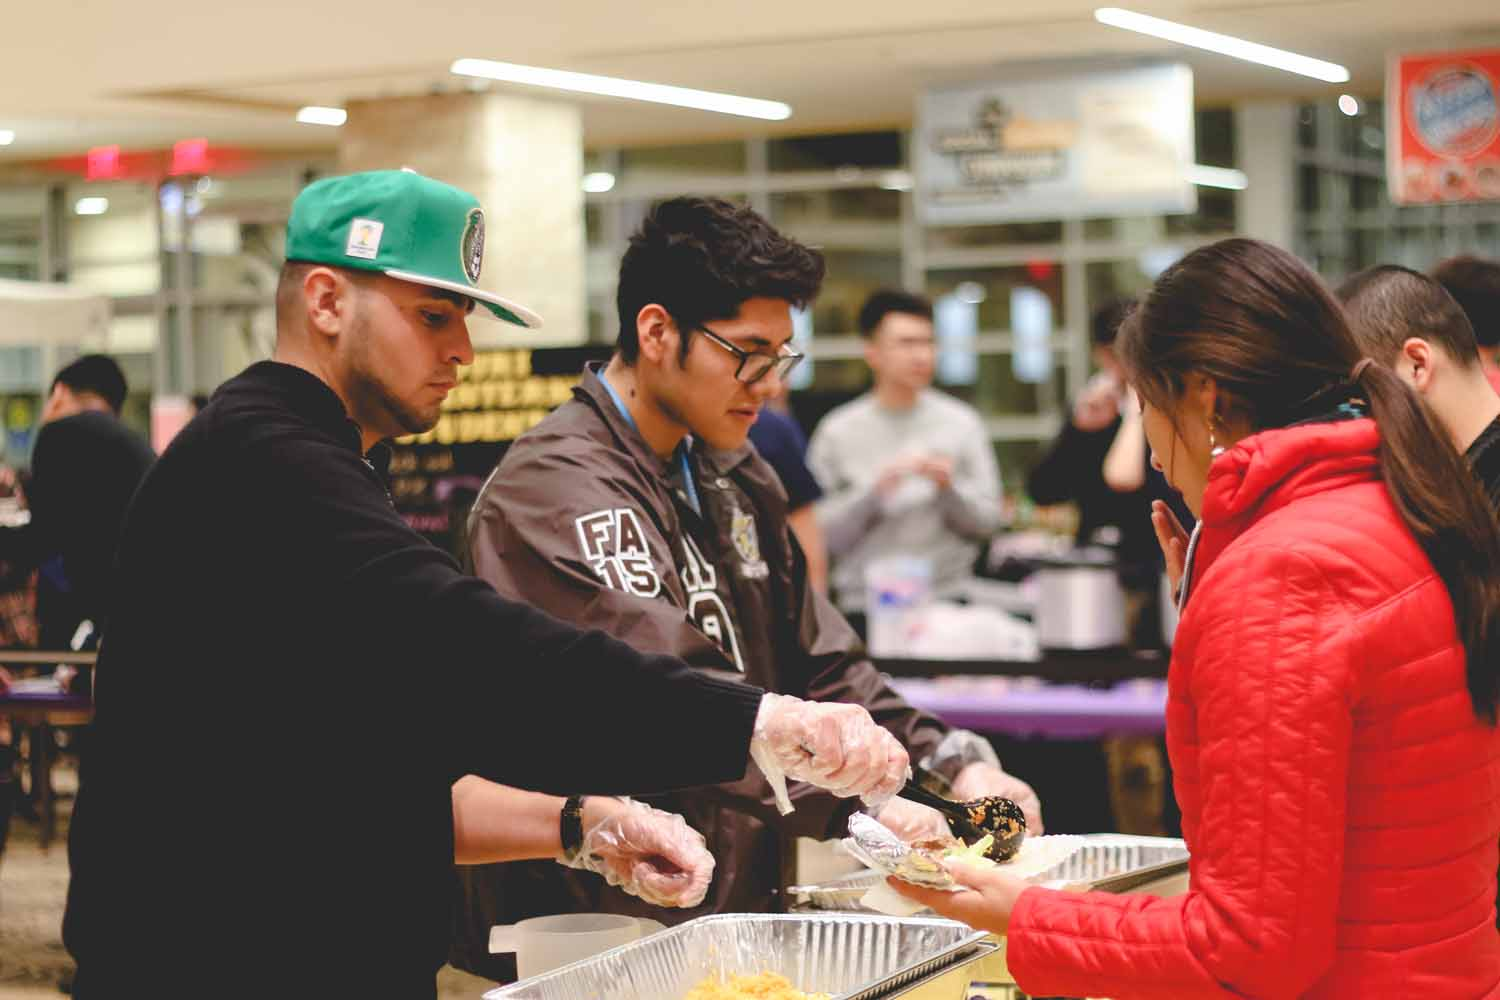 Members of Lambda Theta Pi, a Latin fraternity on campus, serve traditional dishes to attendees. Photo by Hanna Yowell.